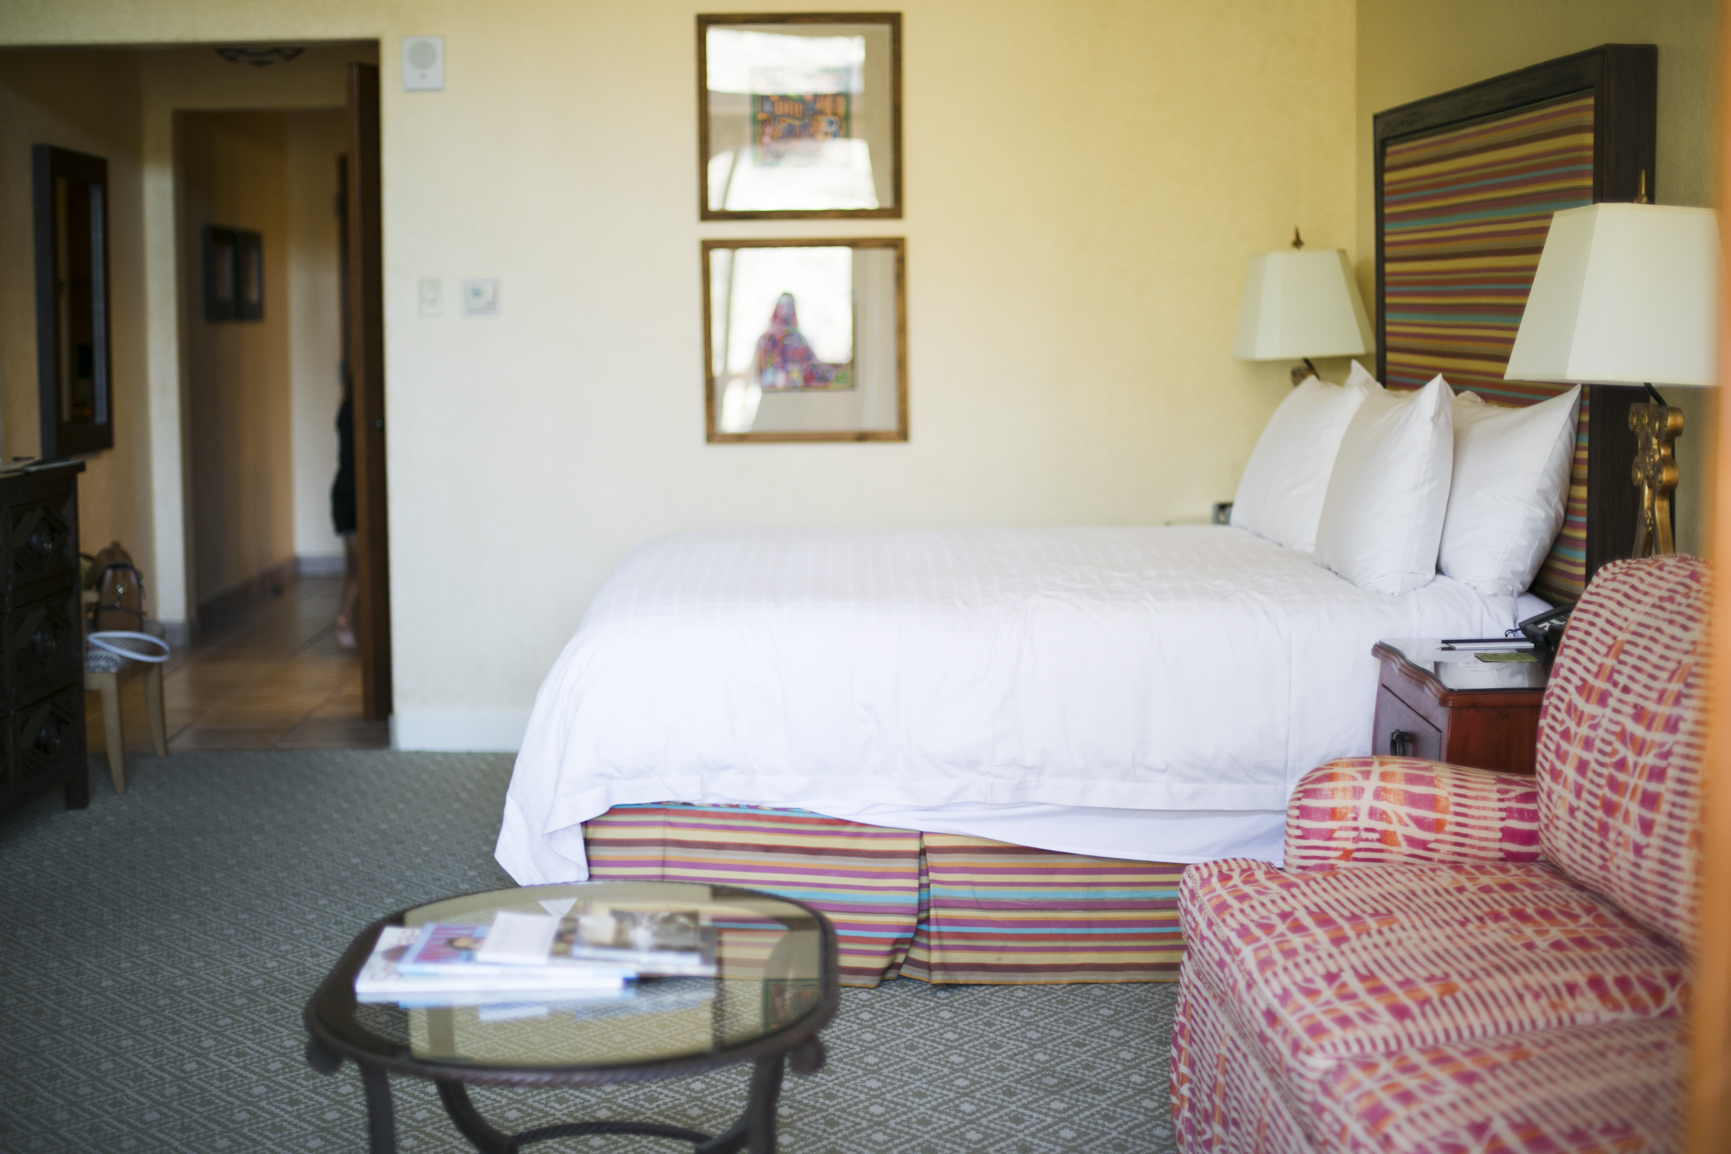 Family Travel Four Seasons Resort Scottsdale Hotel Rooms